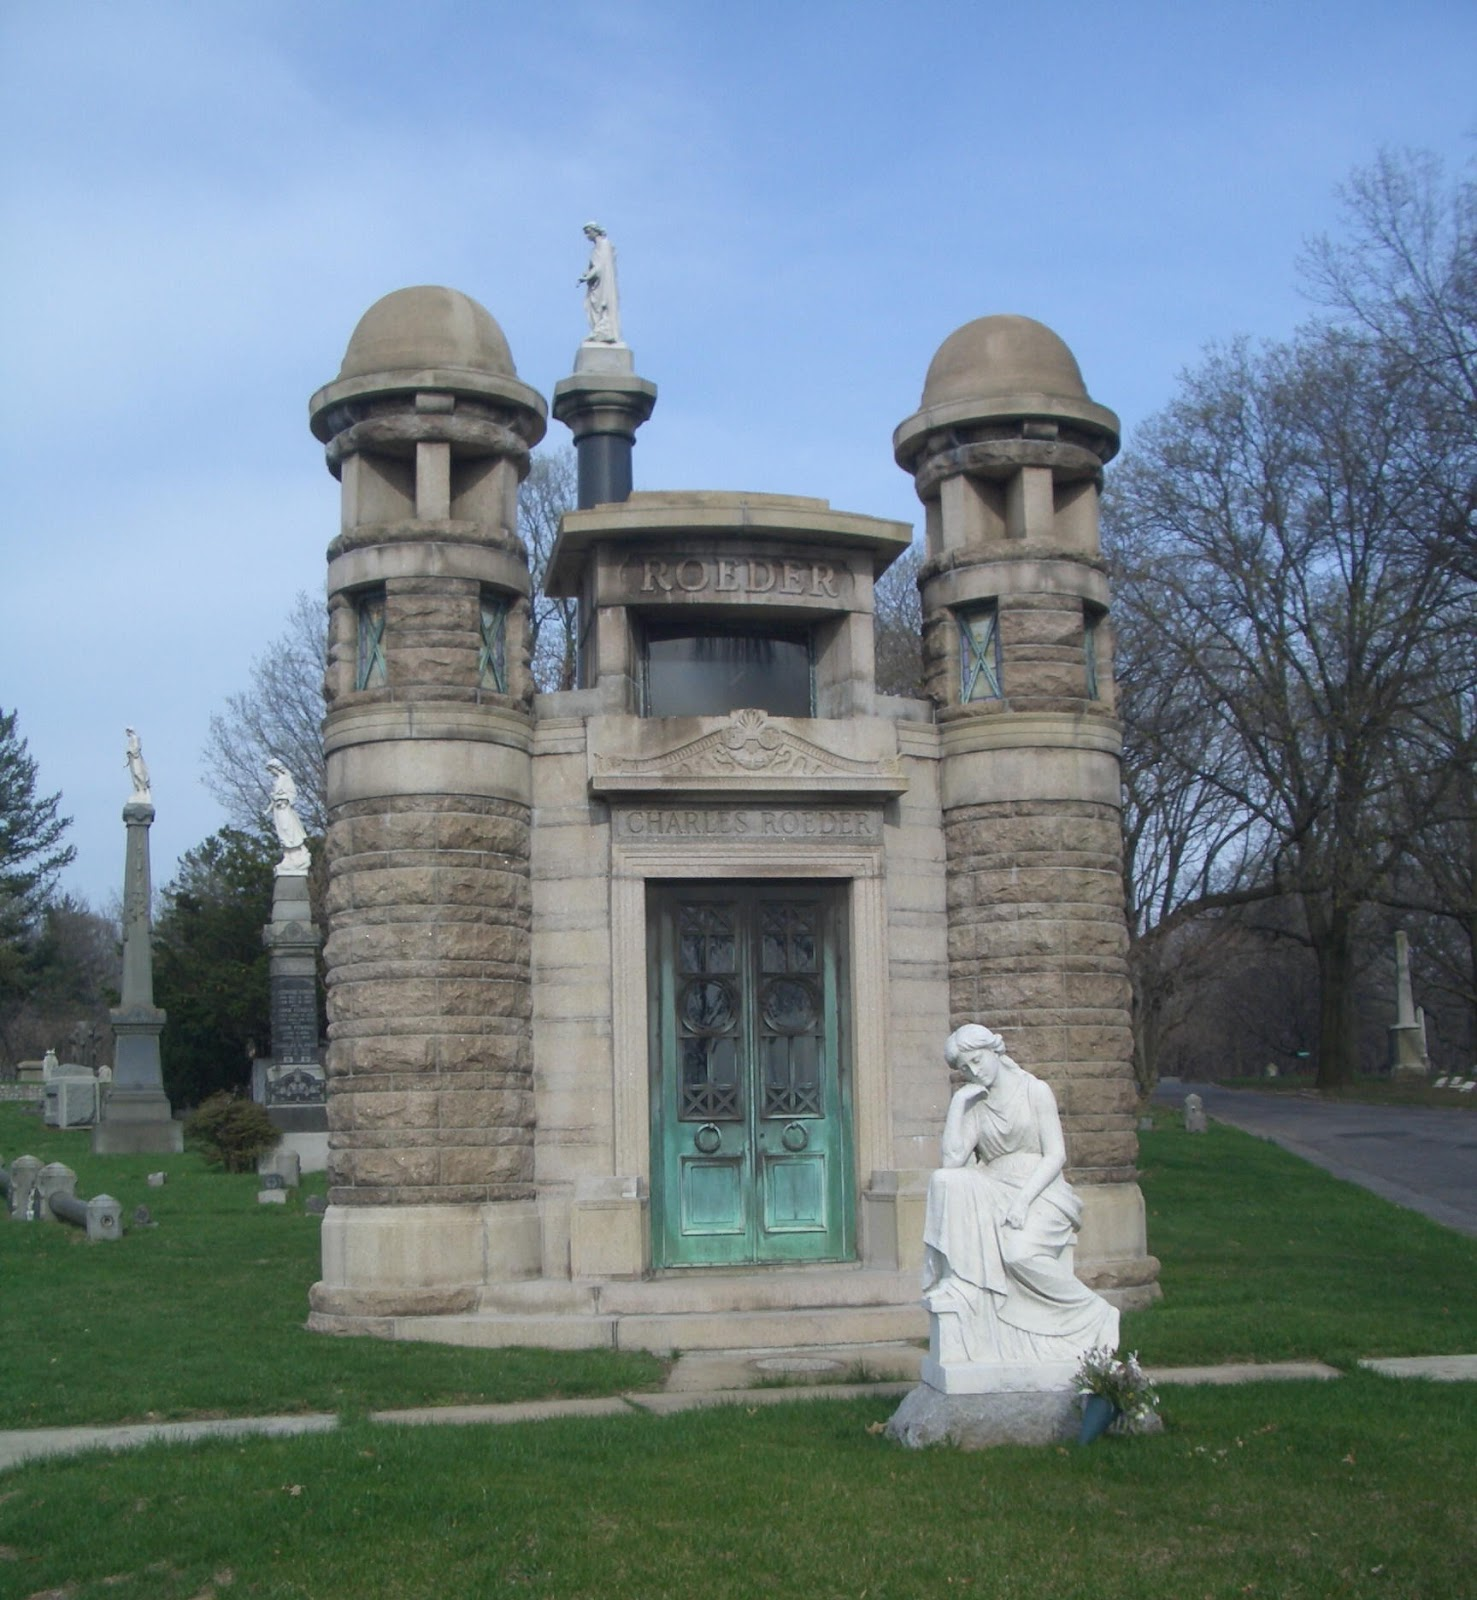 Gardens of stone brooklyn 39 s roeder family - Fairchild funeral home garden city ny ...